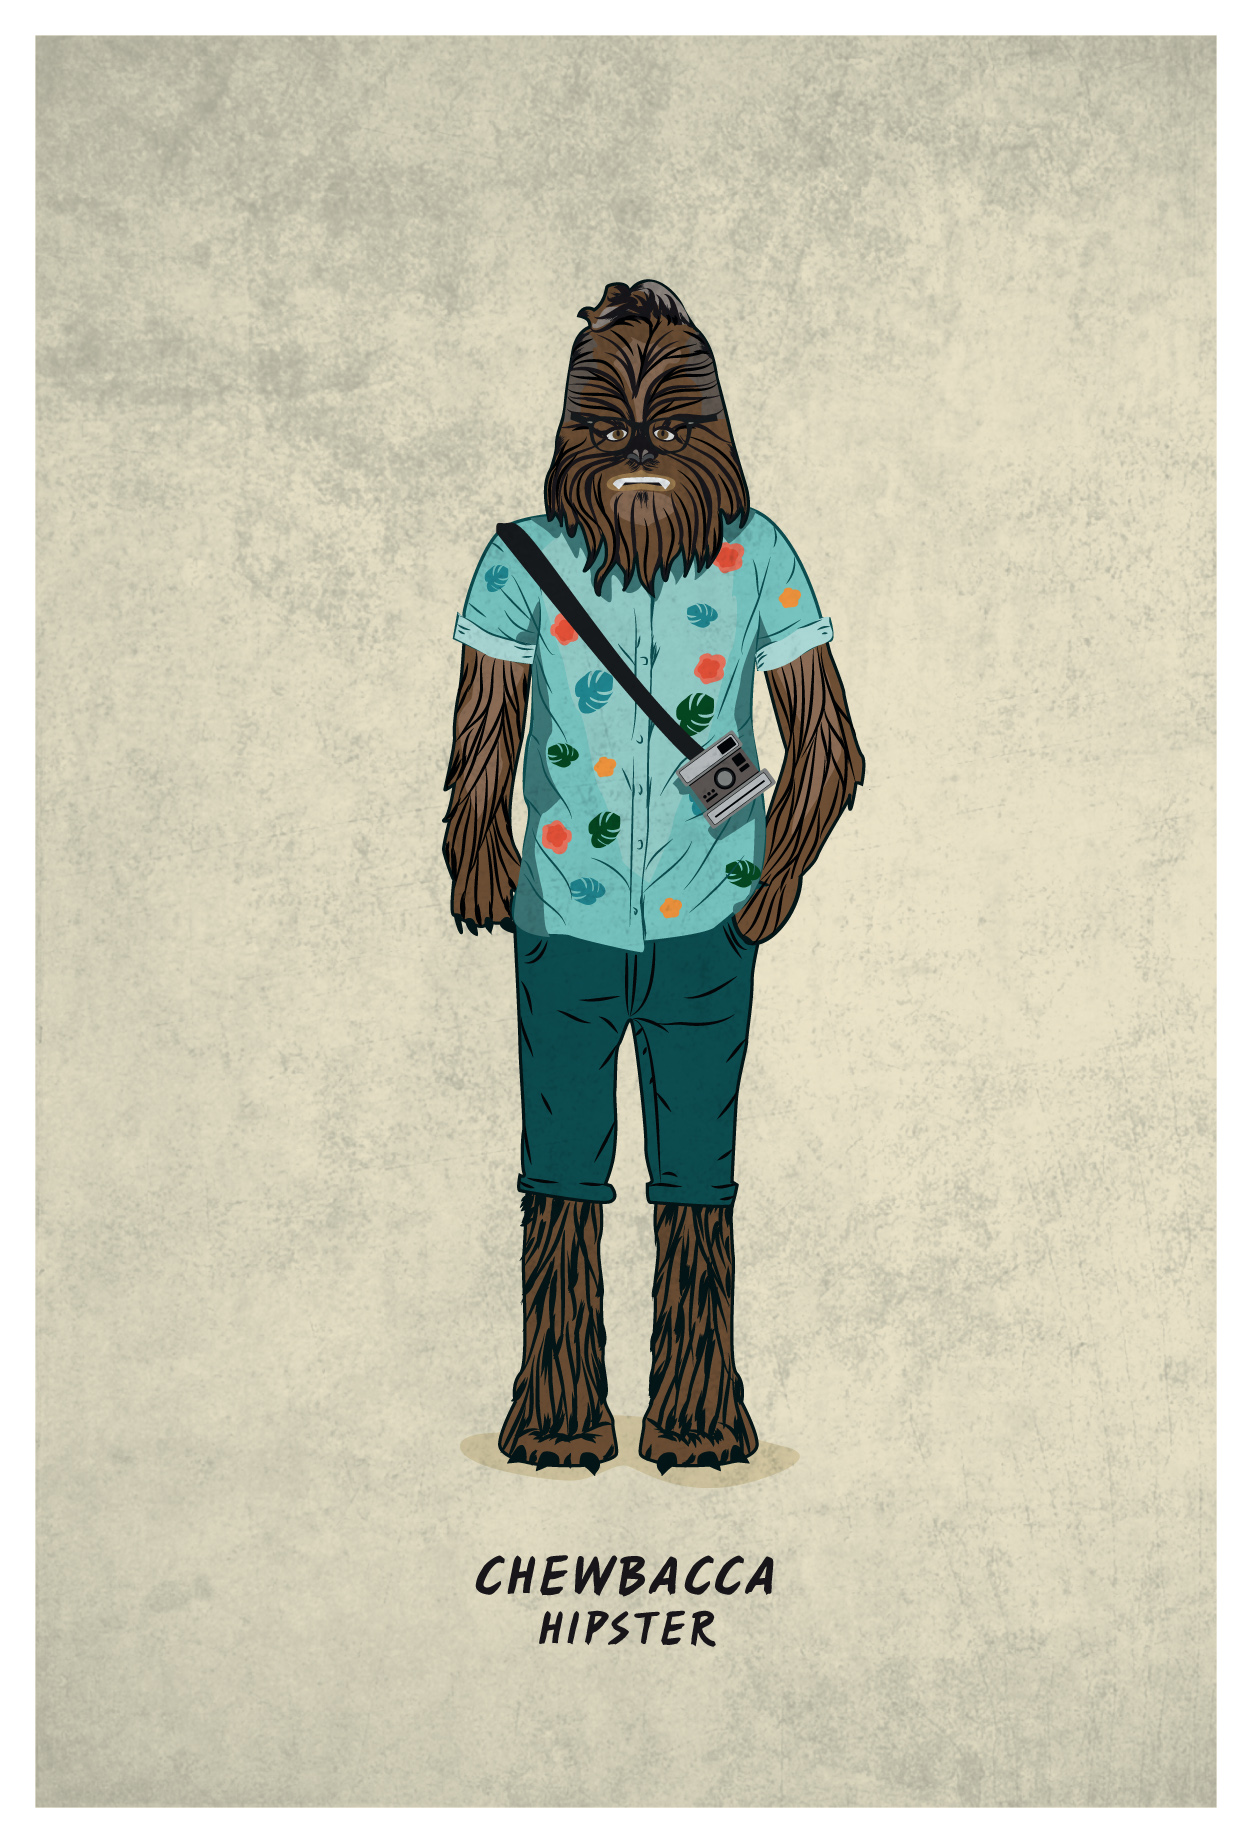 FREAK CHEWBACCA